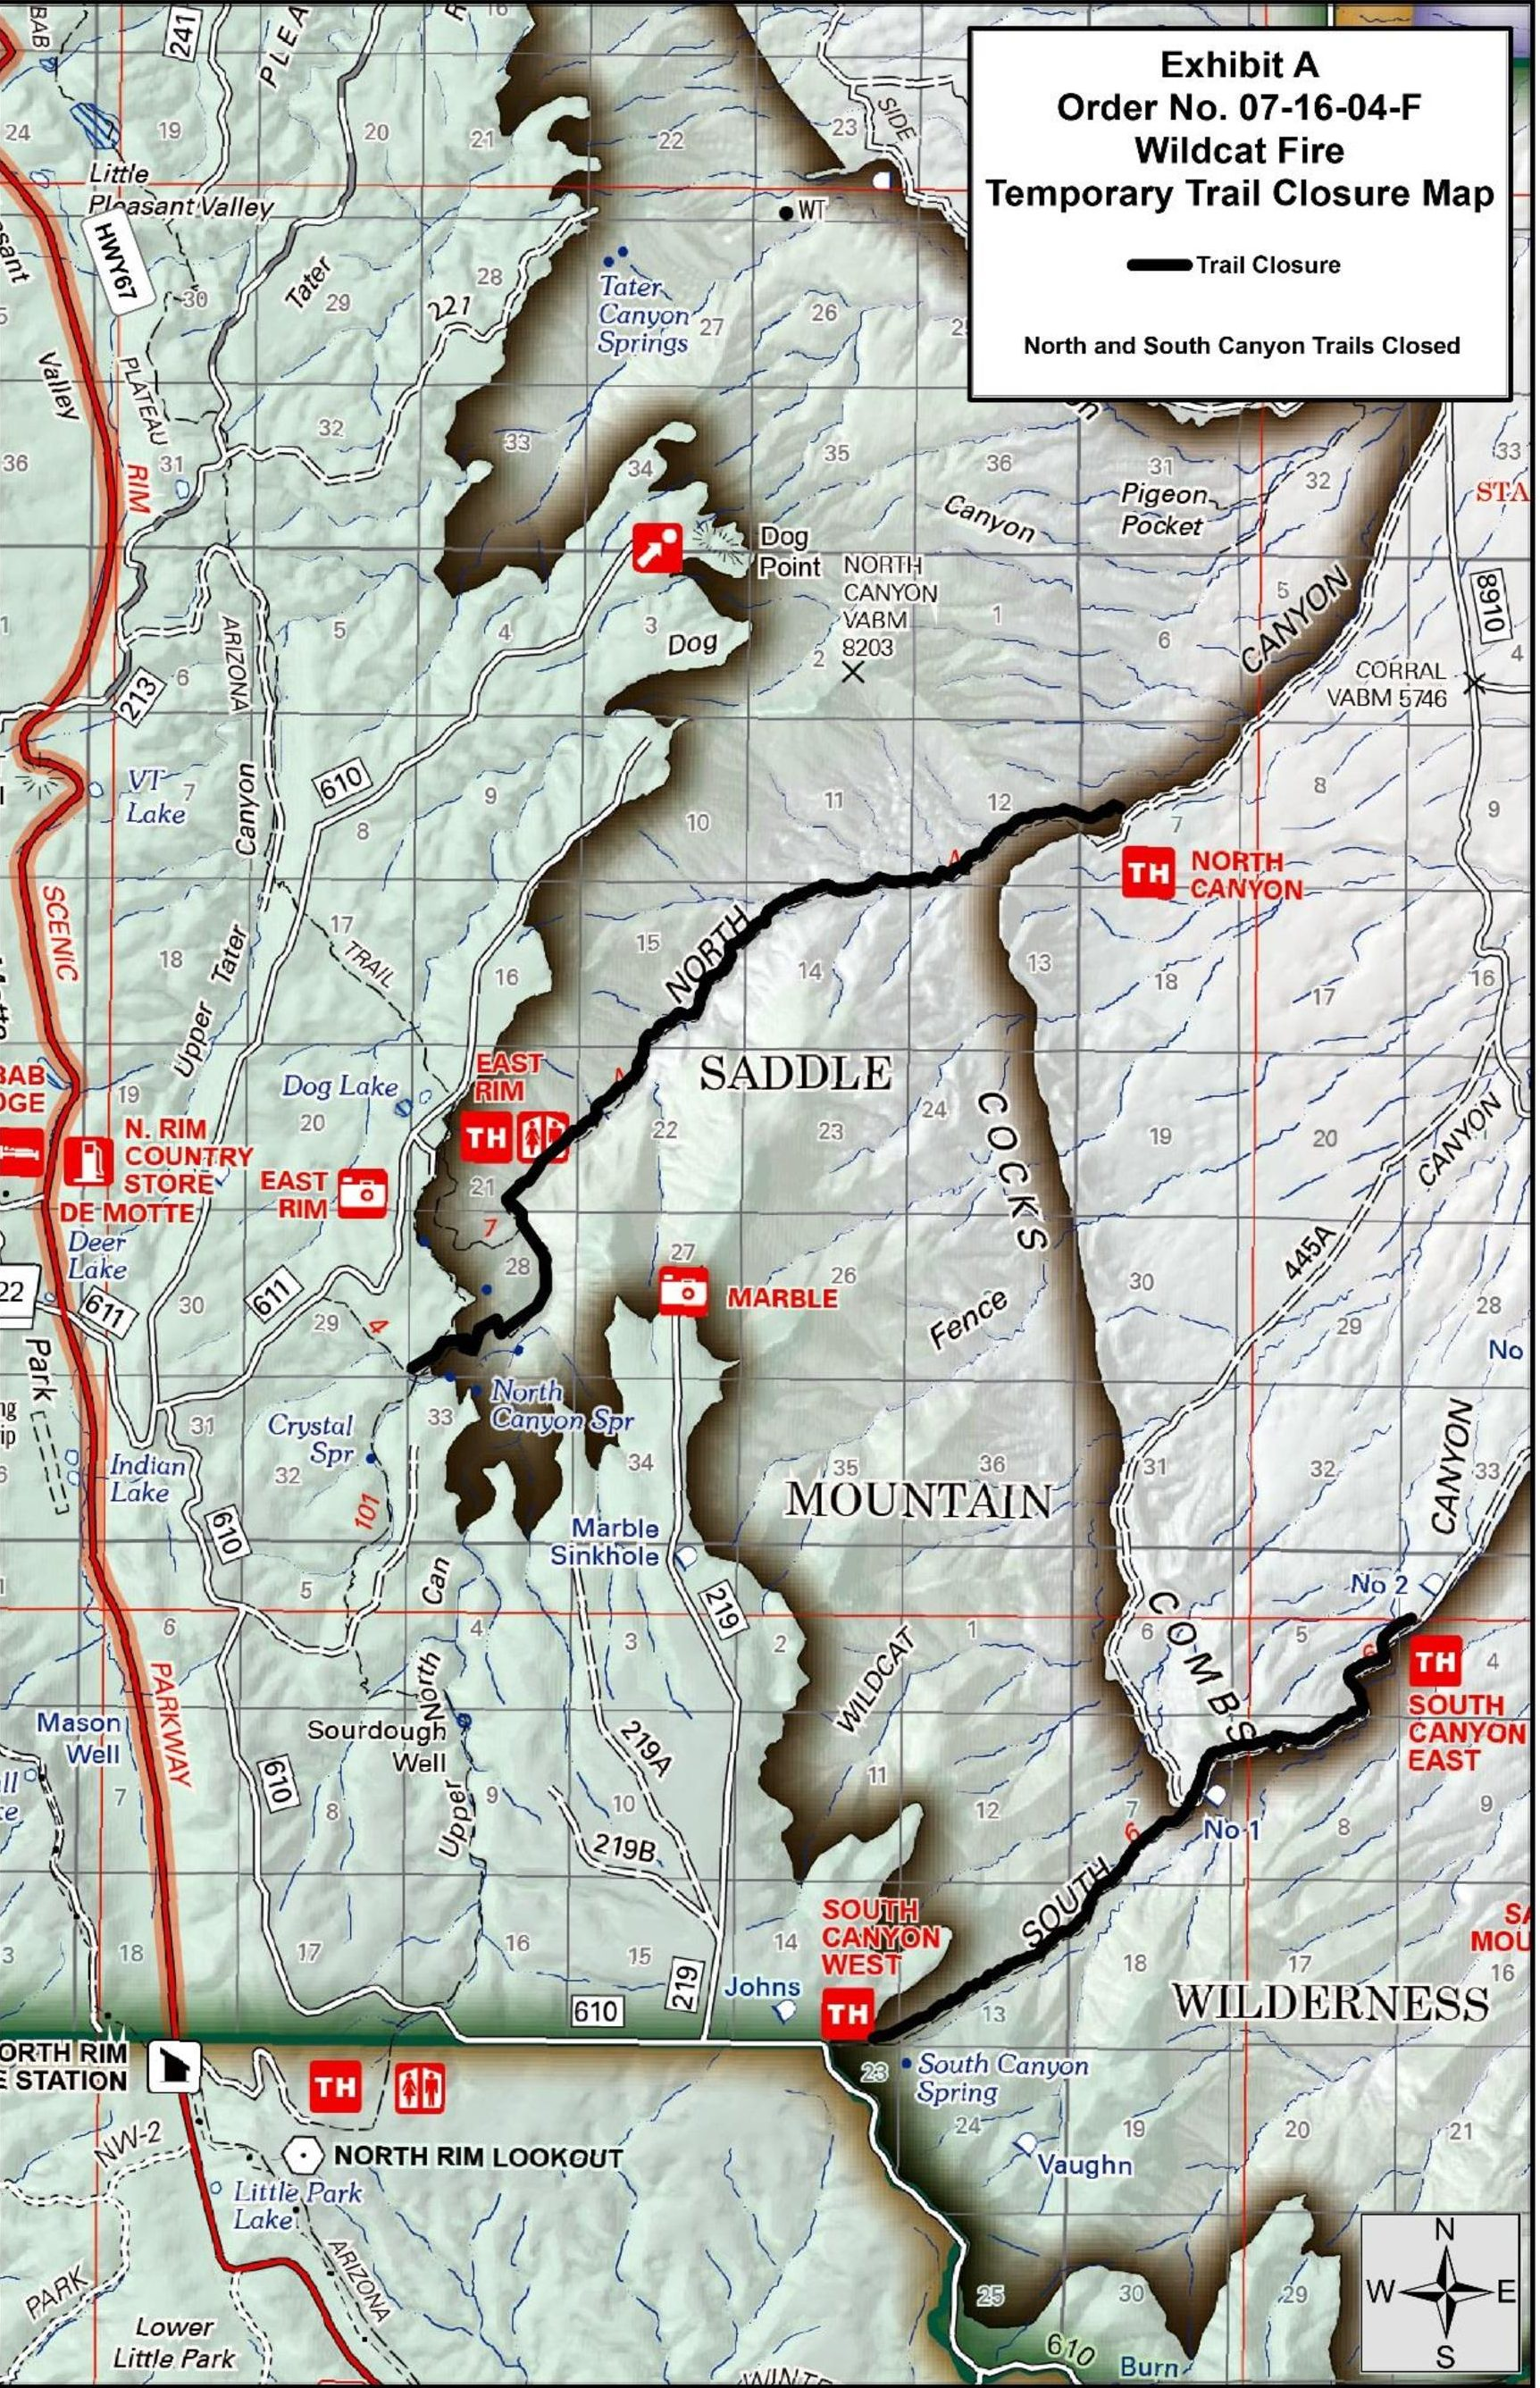 Wildcat Fire Near Grand Canyon Surpasses 1 500 Acres New Trail